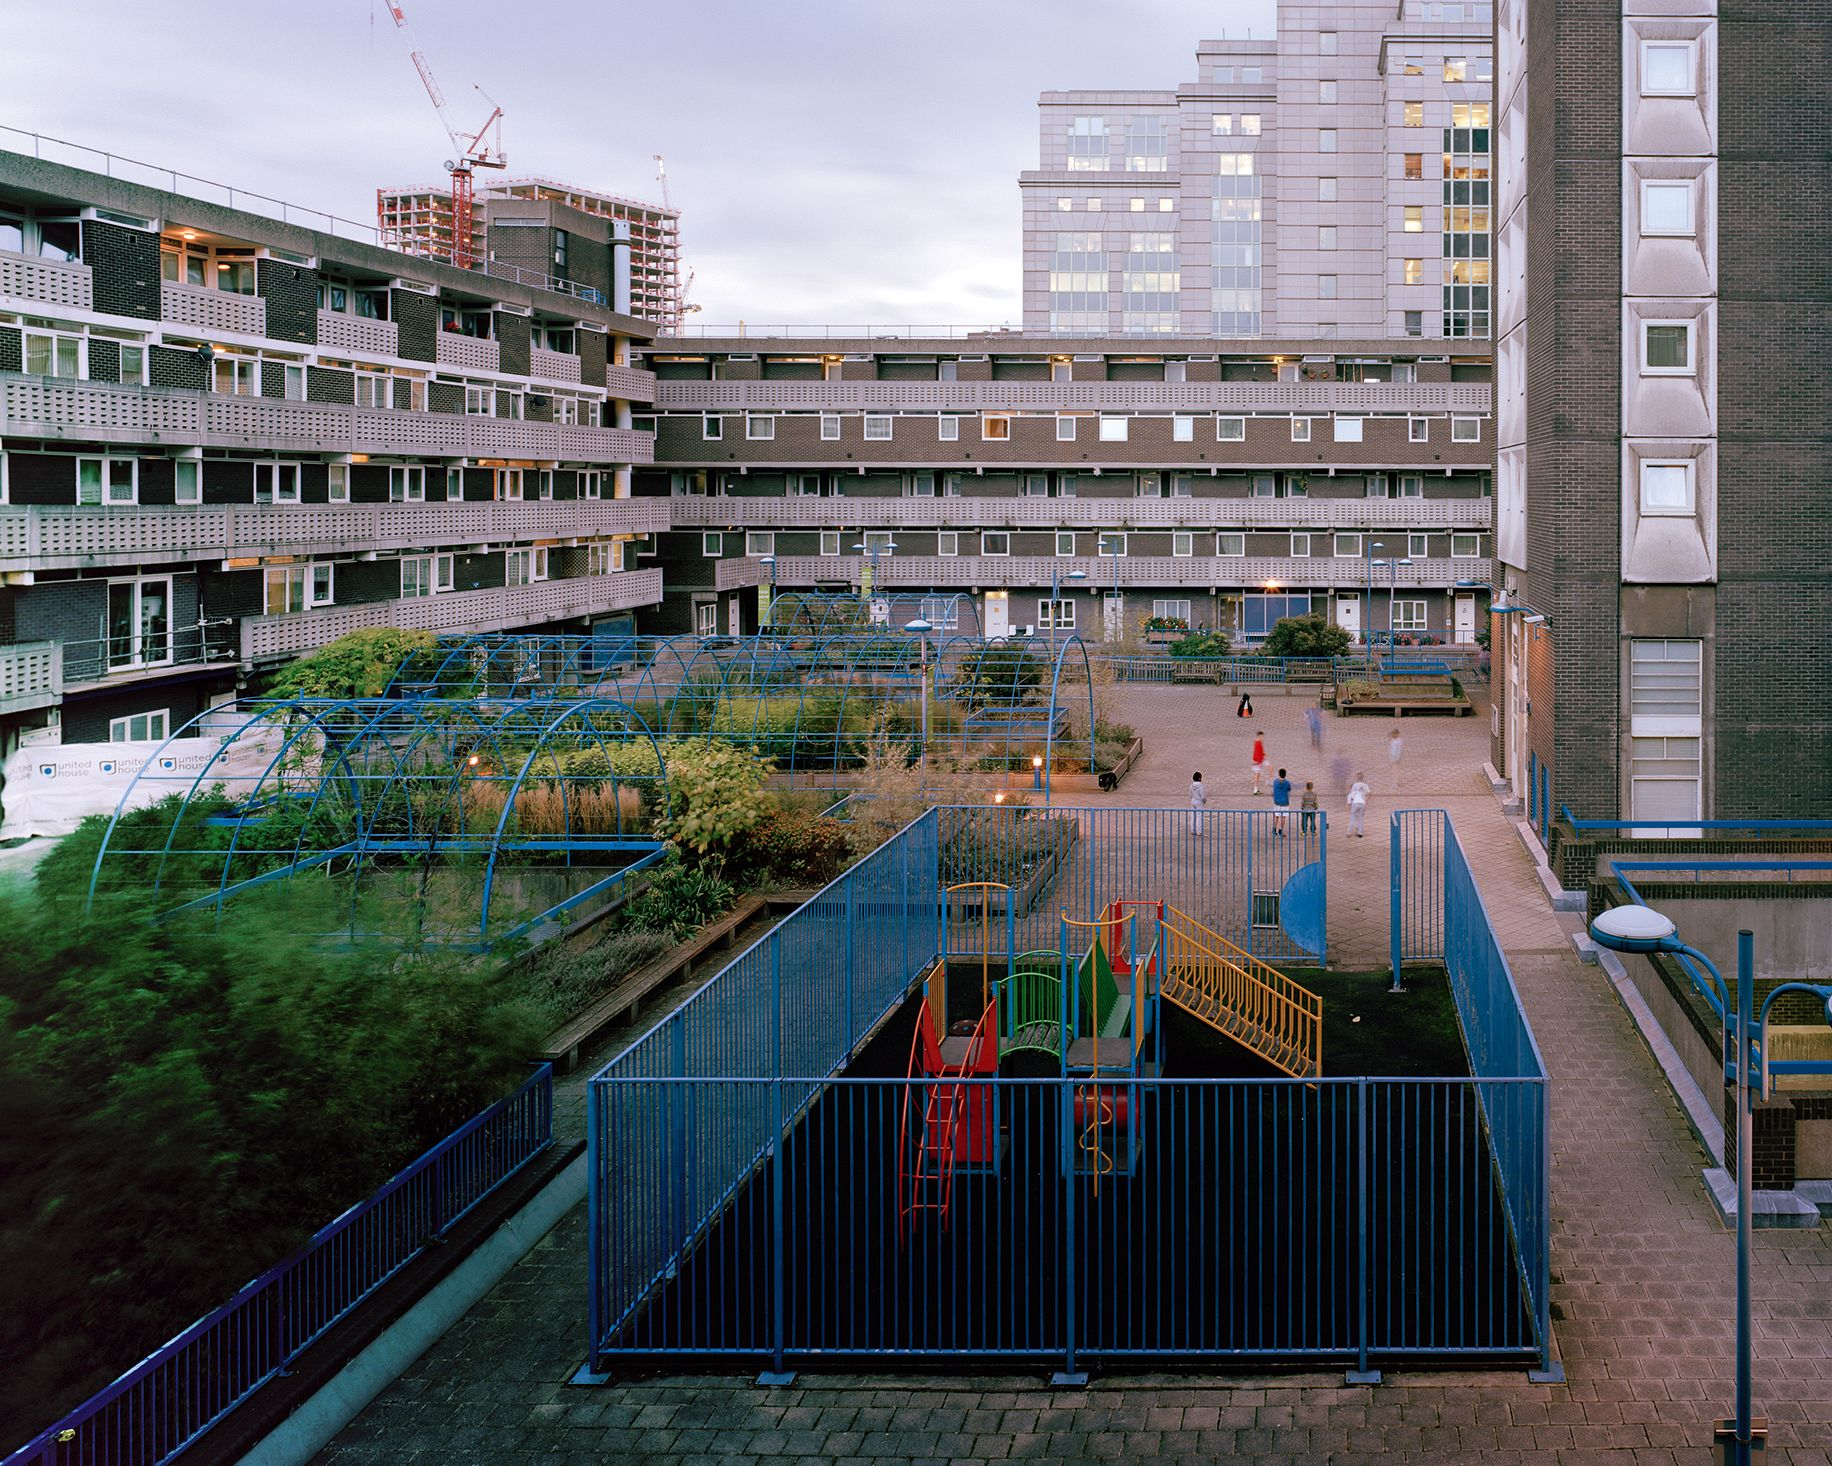 Middlesex Estate, housing project in the London Borough of Tower Hamlets.  Photo: Henrietta Williams